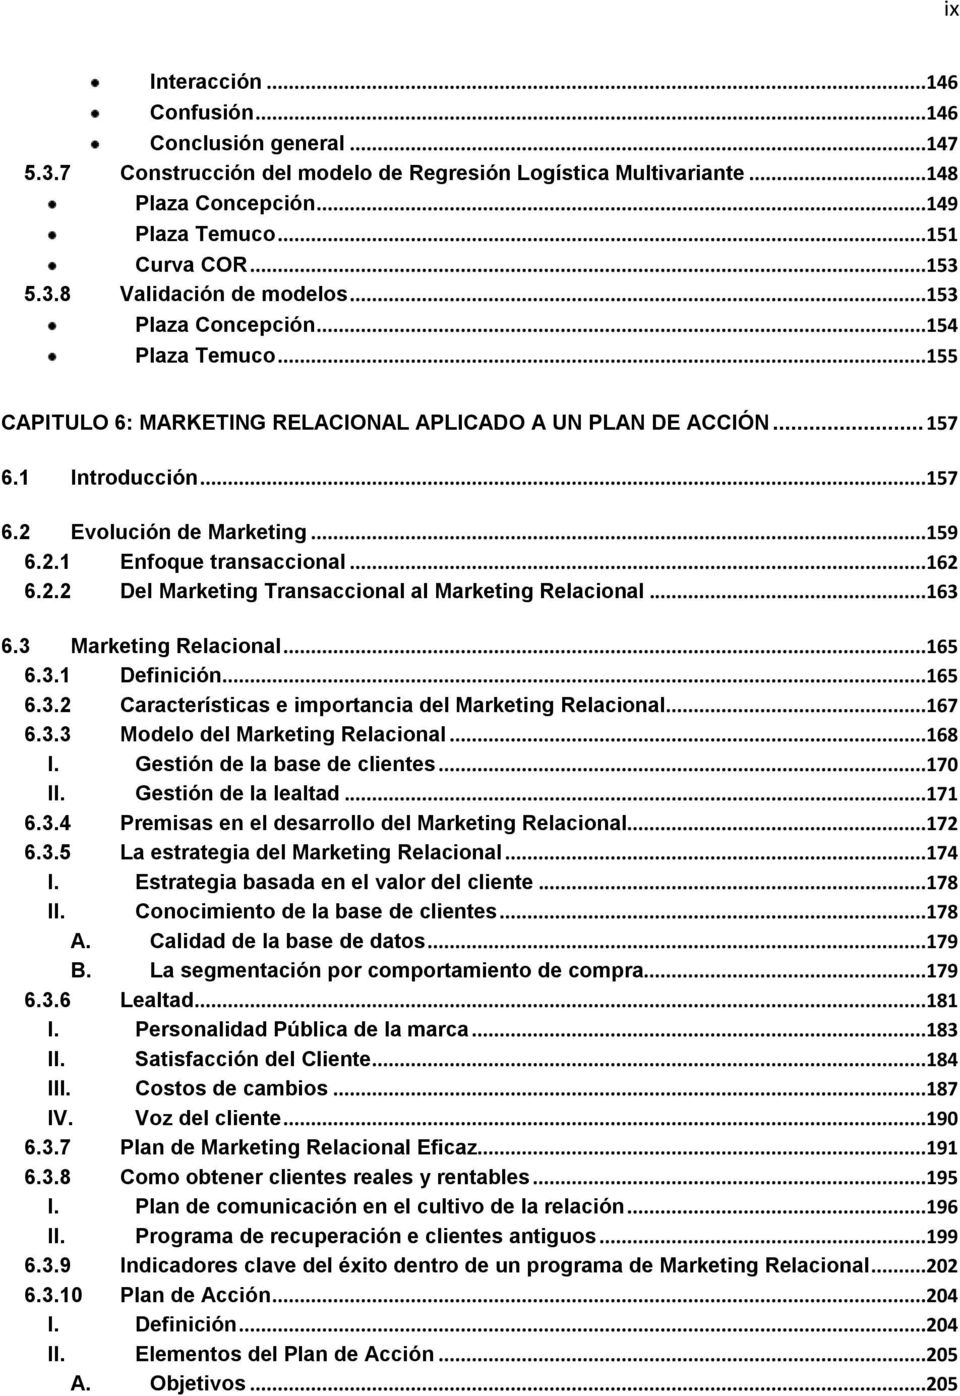 ..162 6.2.2 Del Marketing Transaccional al Marketing Relacional...163 6.3 Marketing Relacional...165 6.3.1 Definición...165 6.3.2 Características e importancia del Marketing Relacional...167 6.3.3 Modelo del Marketing Relacional.